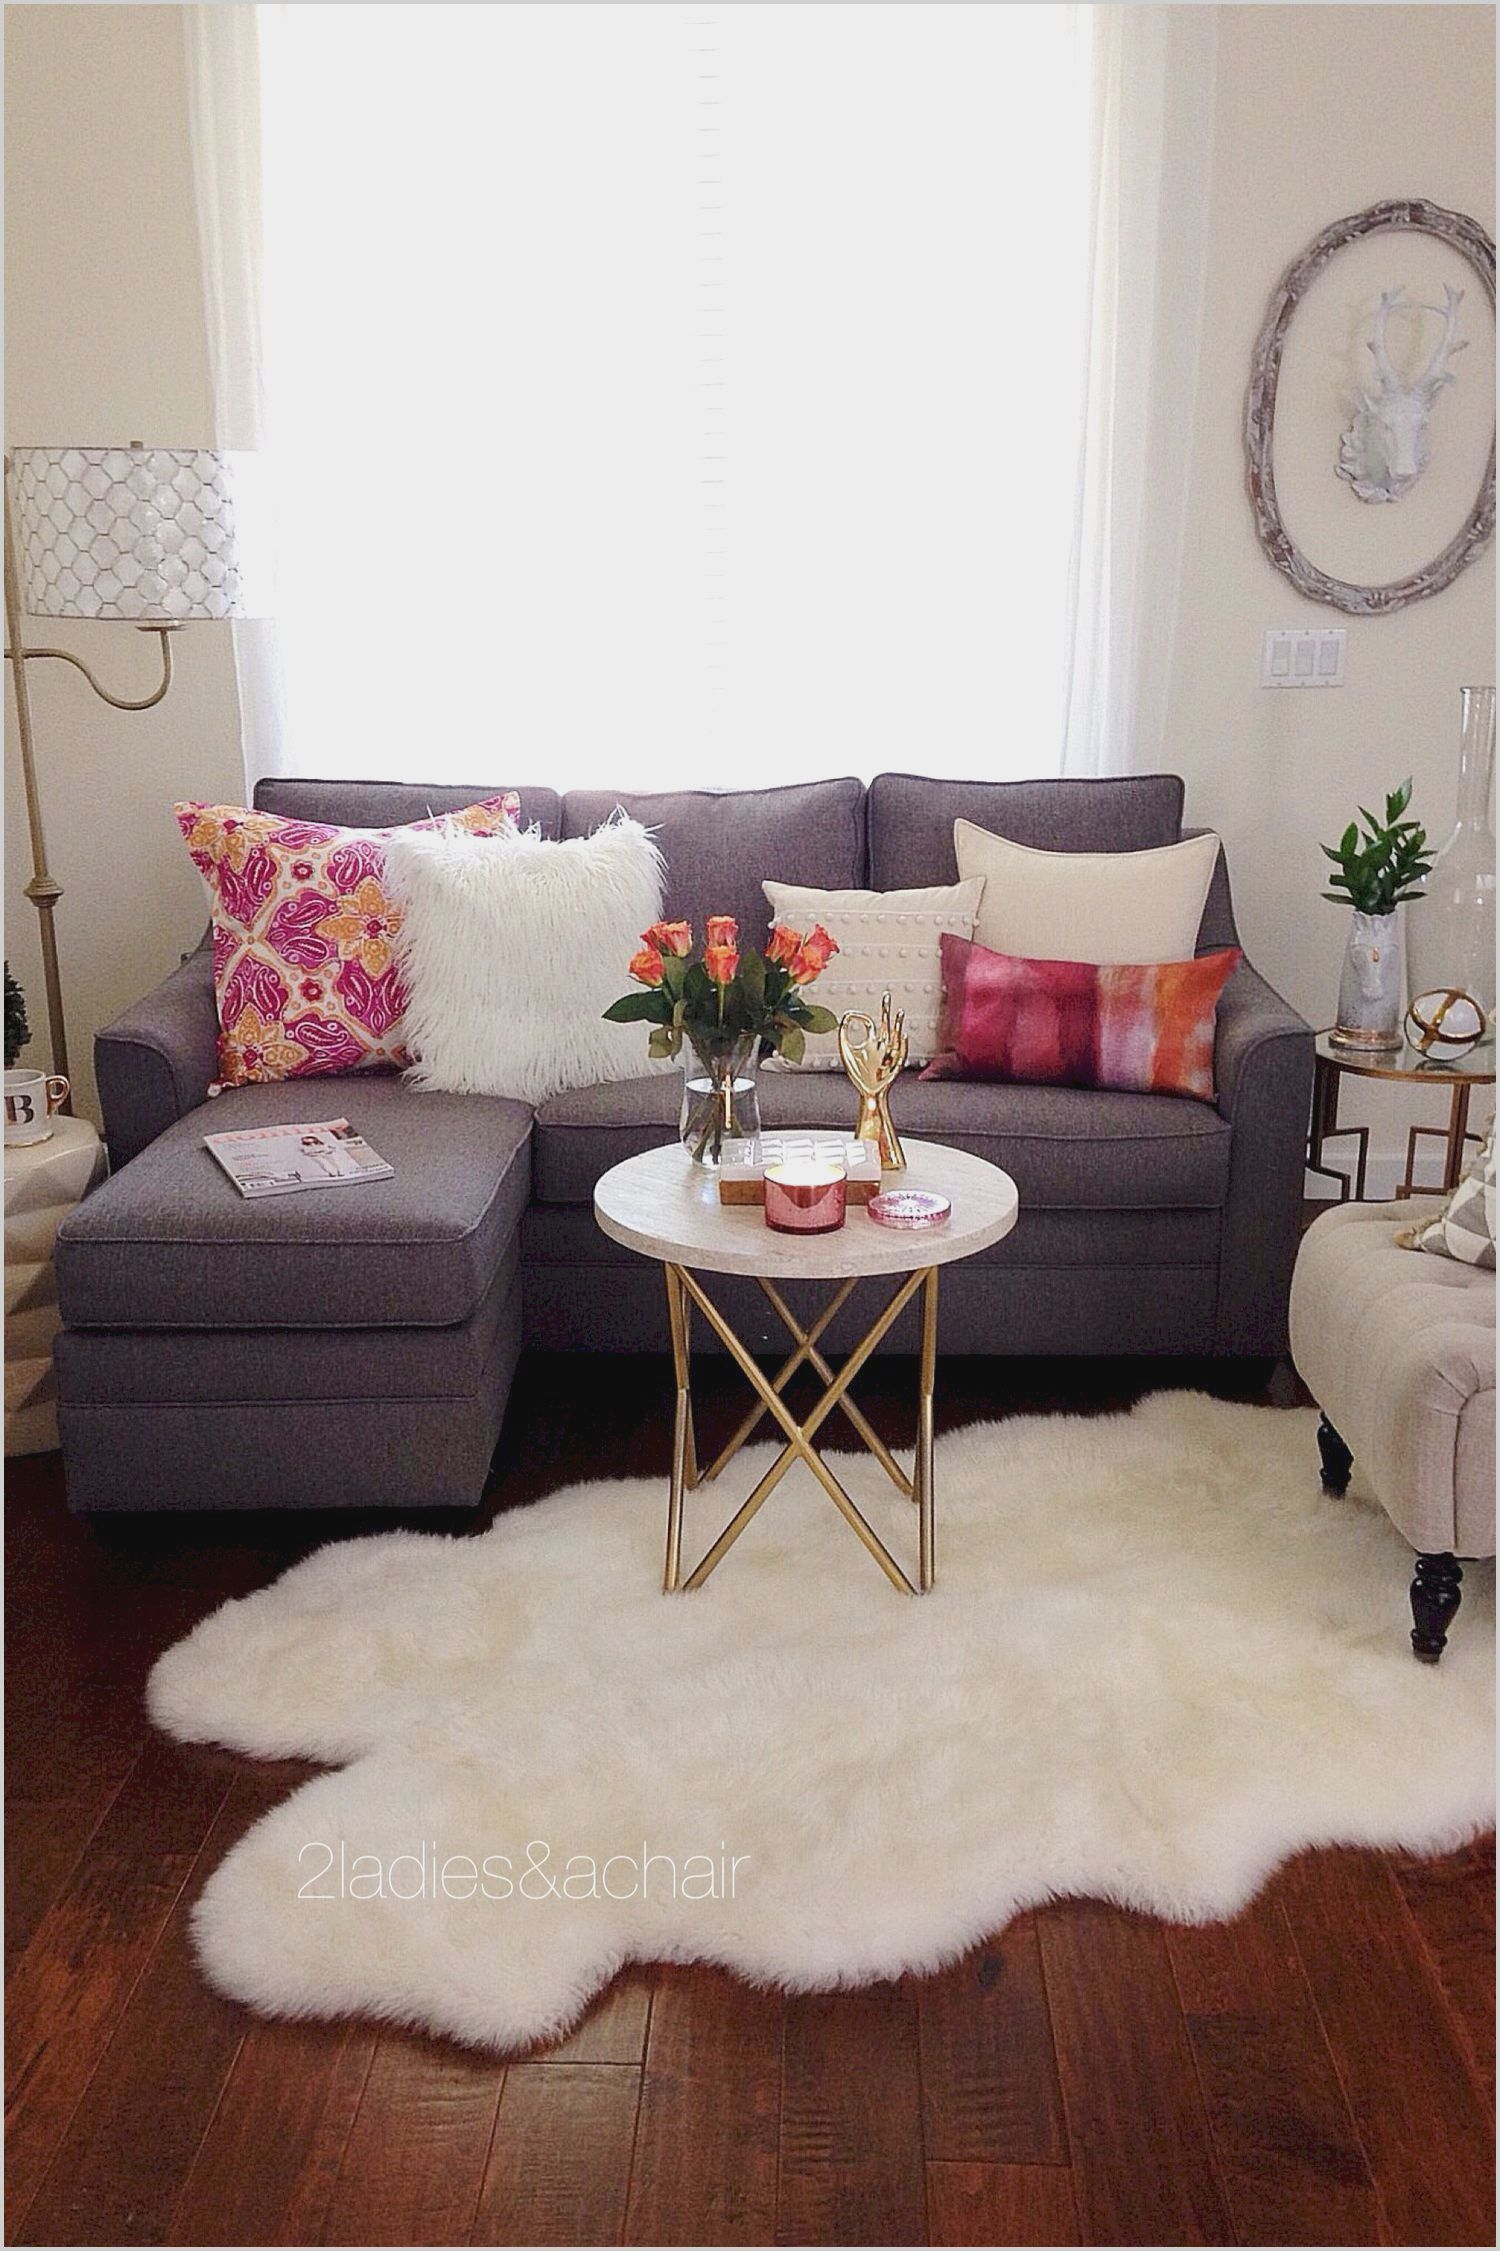 Decorate Your Living Room For Less Living Room Decor Apartment Small Apartment Decorating Small Living Rooms